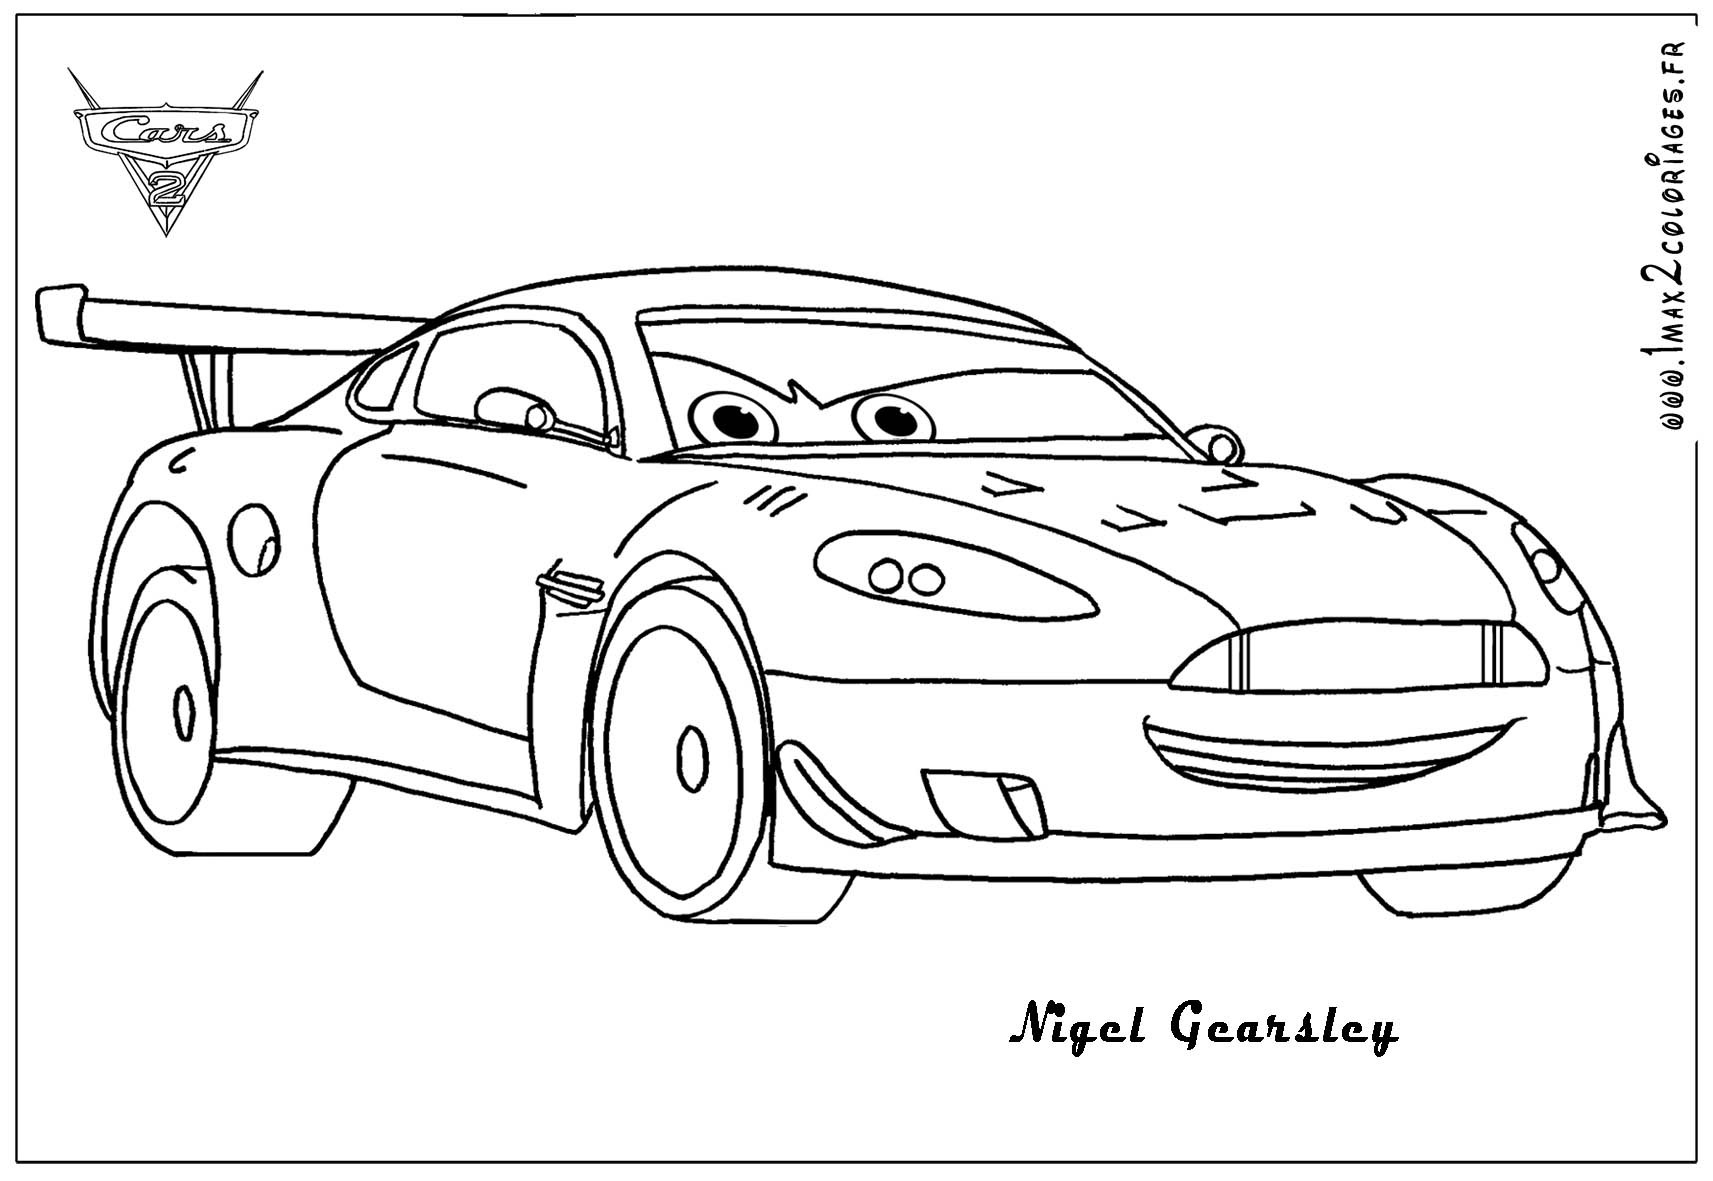 coloring pages cars 2 Collection-Cars 2 Disney Coloring Pages Elegant Colorful Cars 2 Coloring Pages to Print Adornment Coloring Paper 19-k